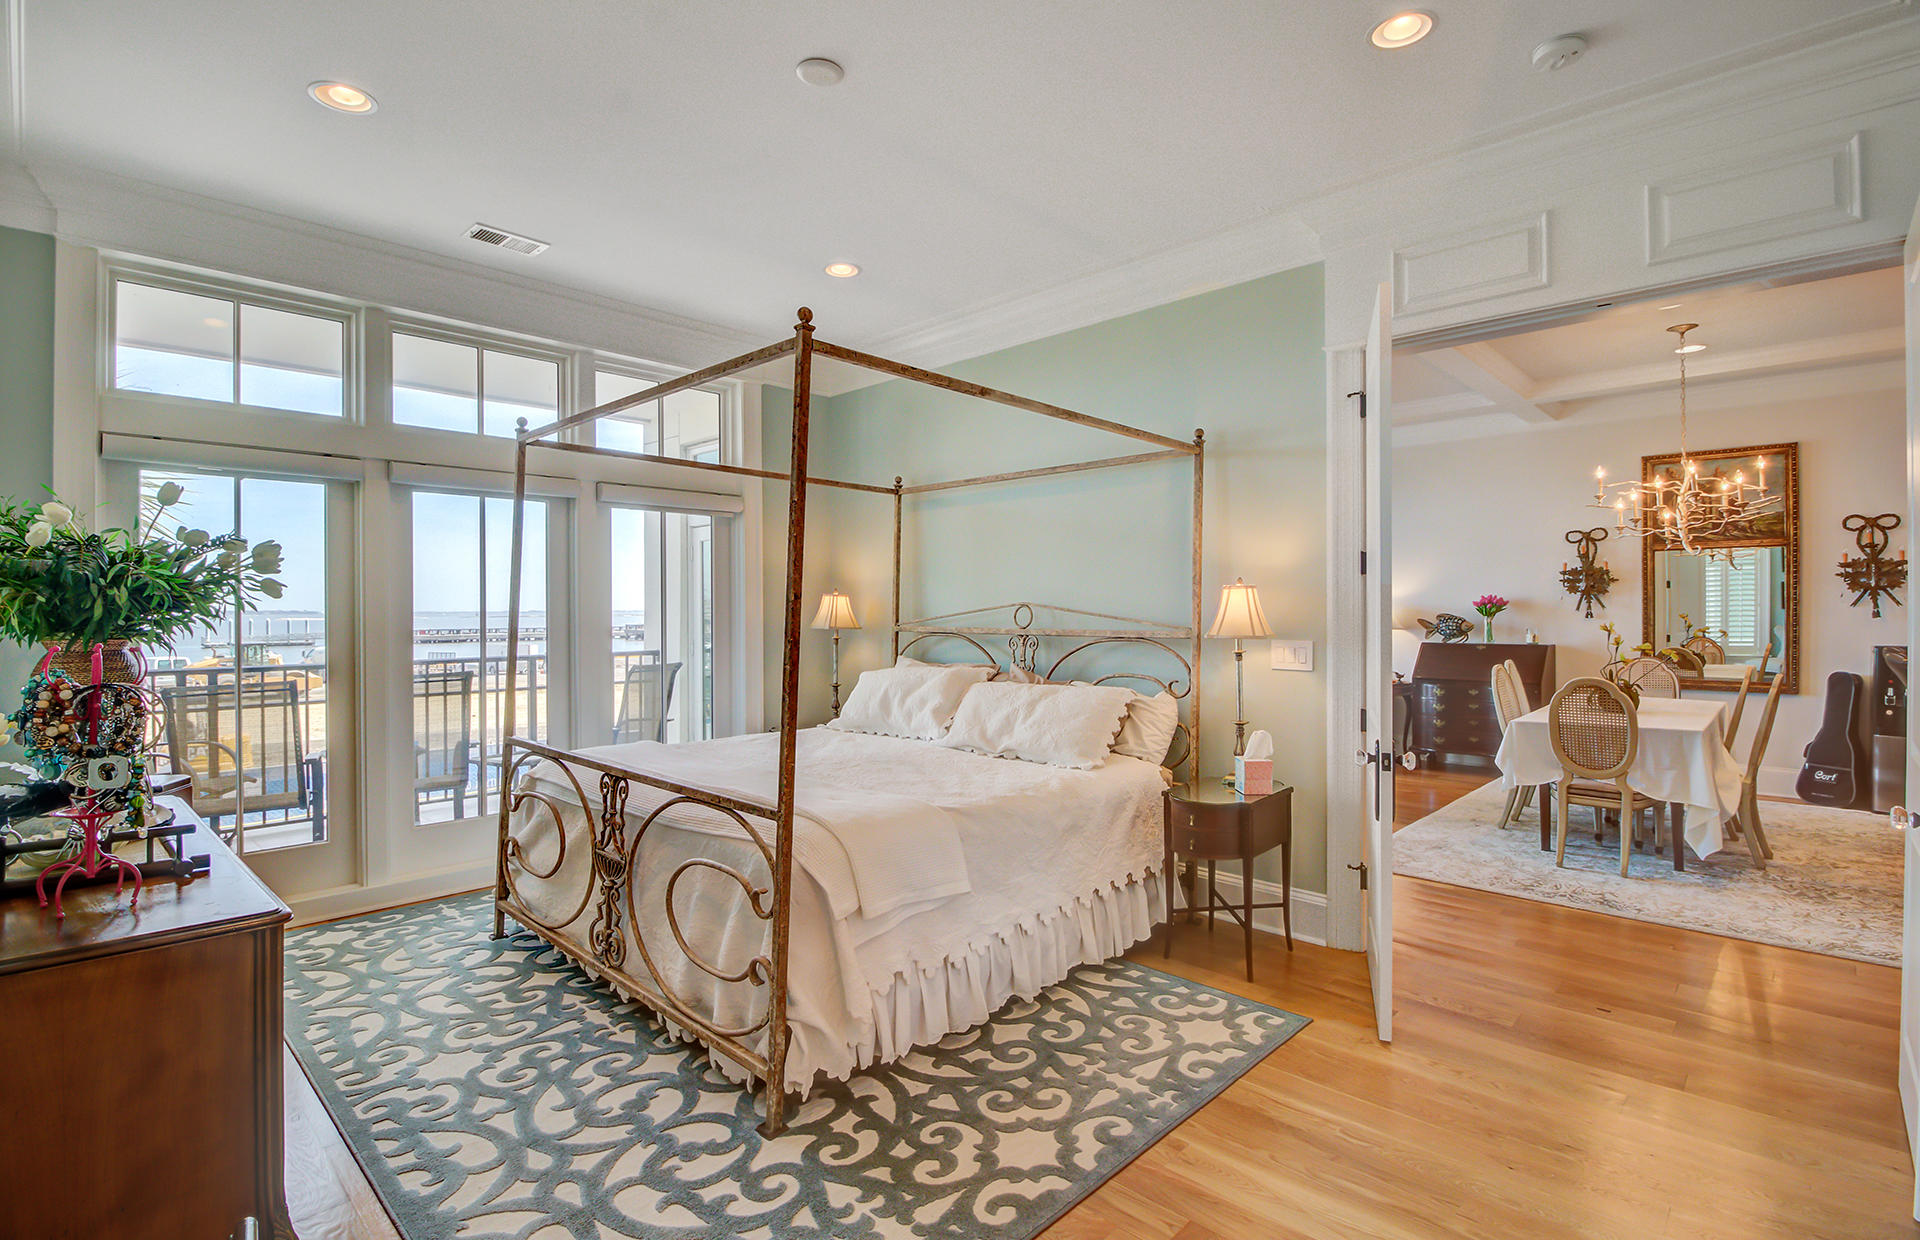 French Quarter Homes For Sale - 175 Concord, Charleston, SC - 2